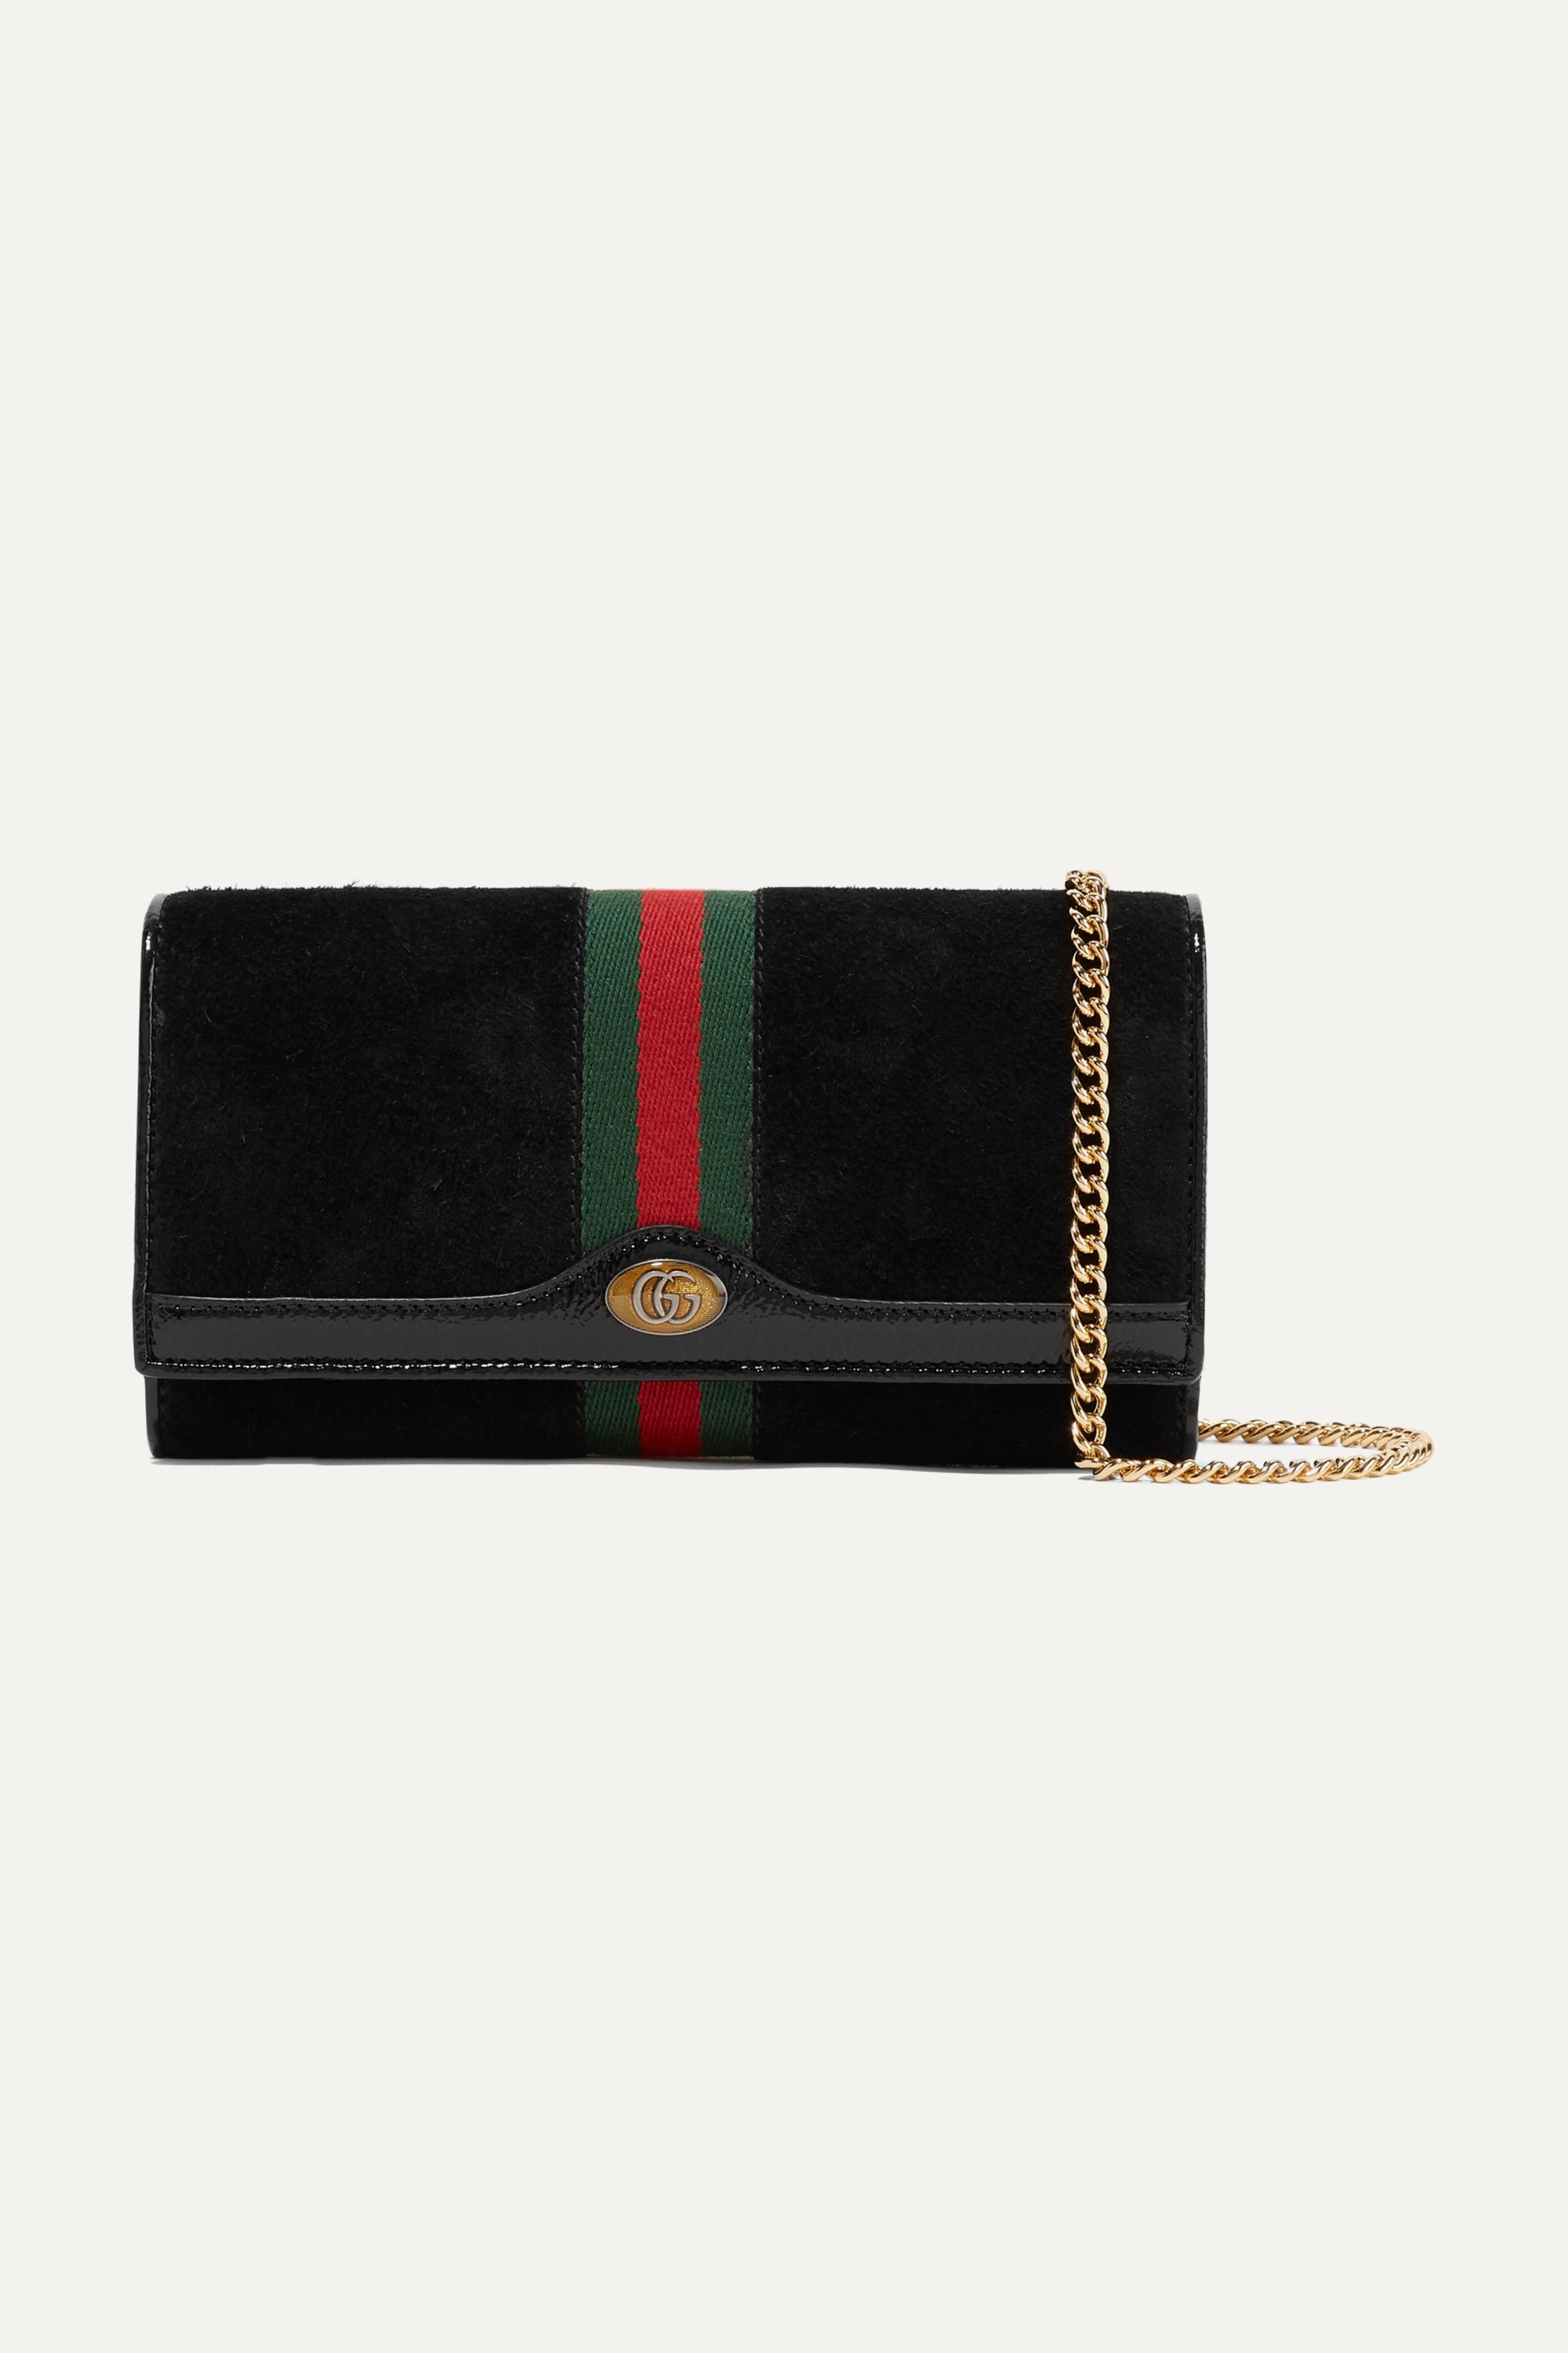 Gucci Ophidia micro patent leather-trimmed suede shoulder bag